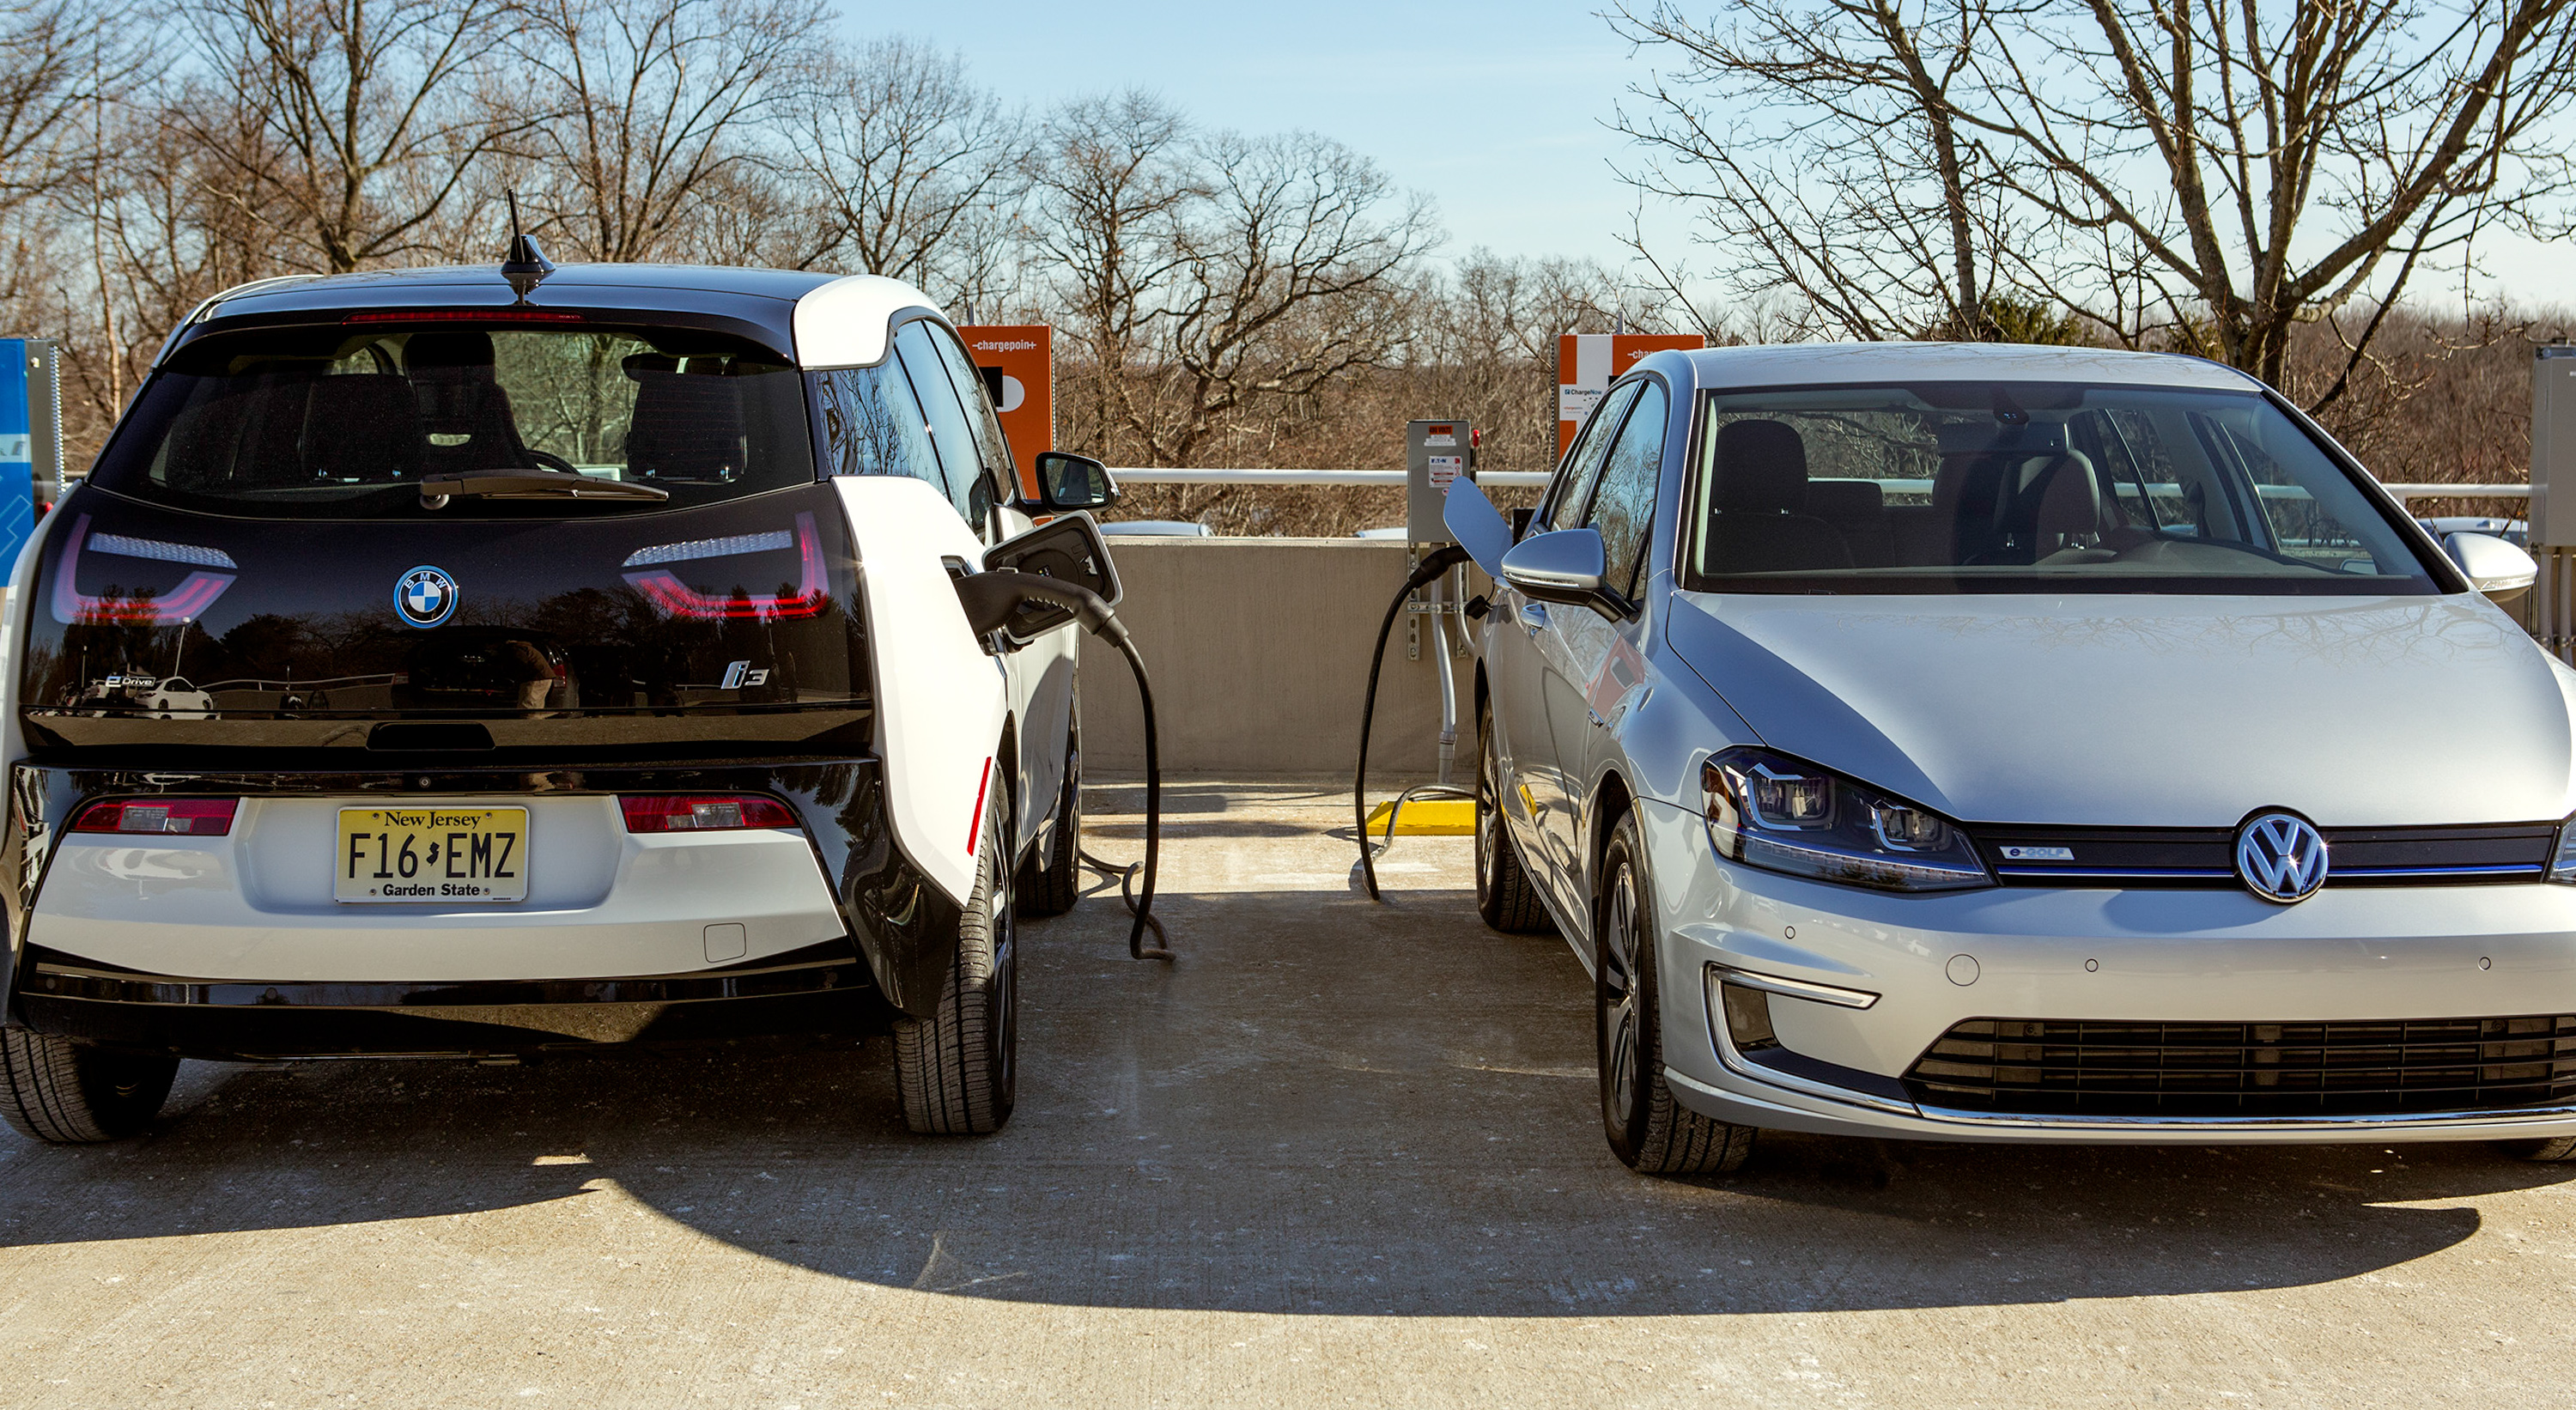 Bmw Vw And Chargepoint To Build 100 Ccs Fast Charging